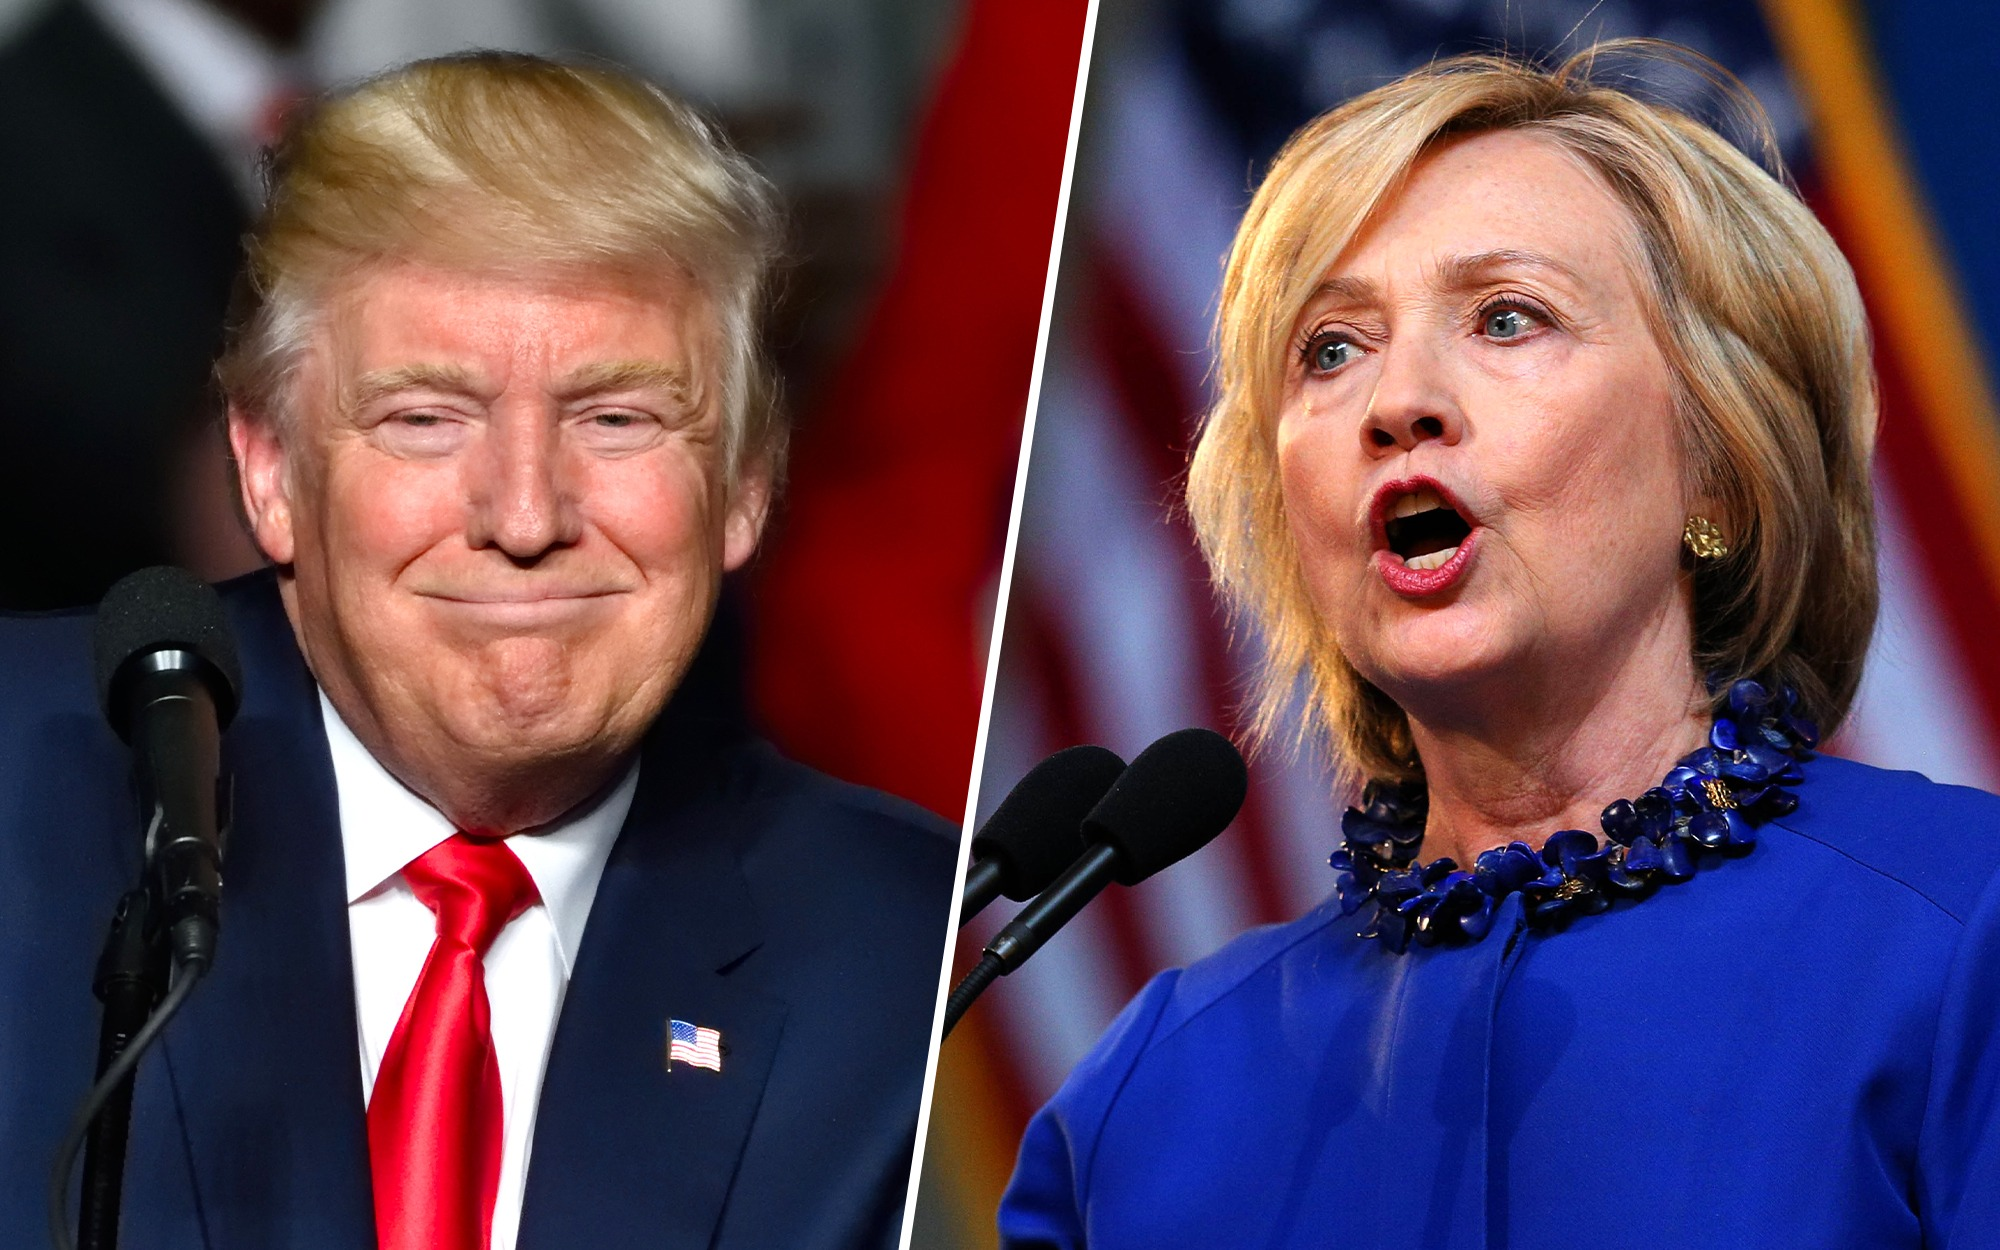 Hillary Strikes at Bernie, Trump Strikes at Hillary, What is Happening?